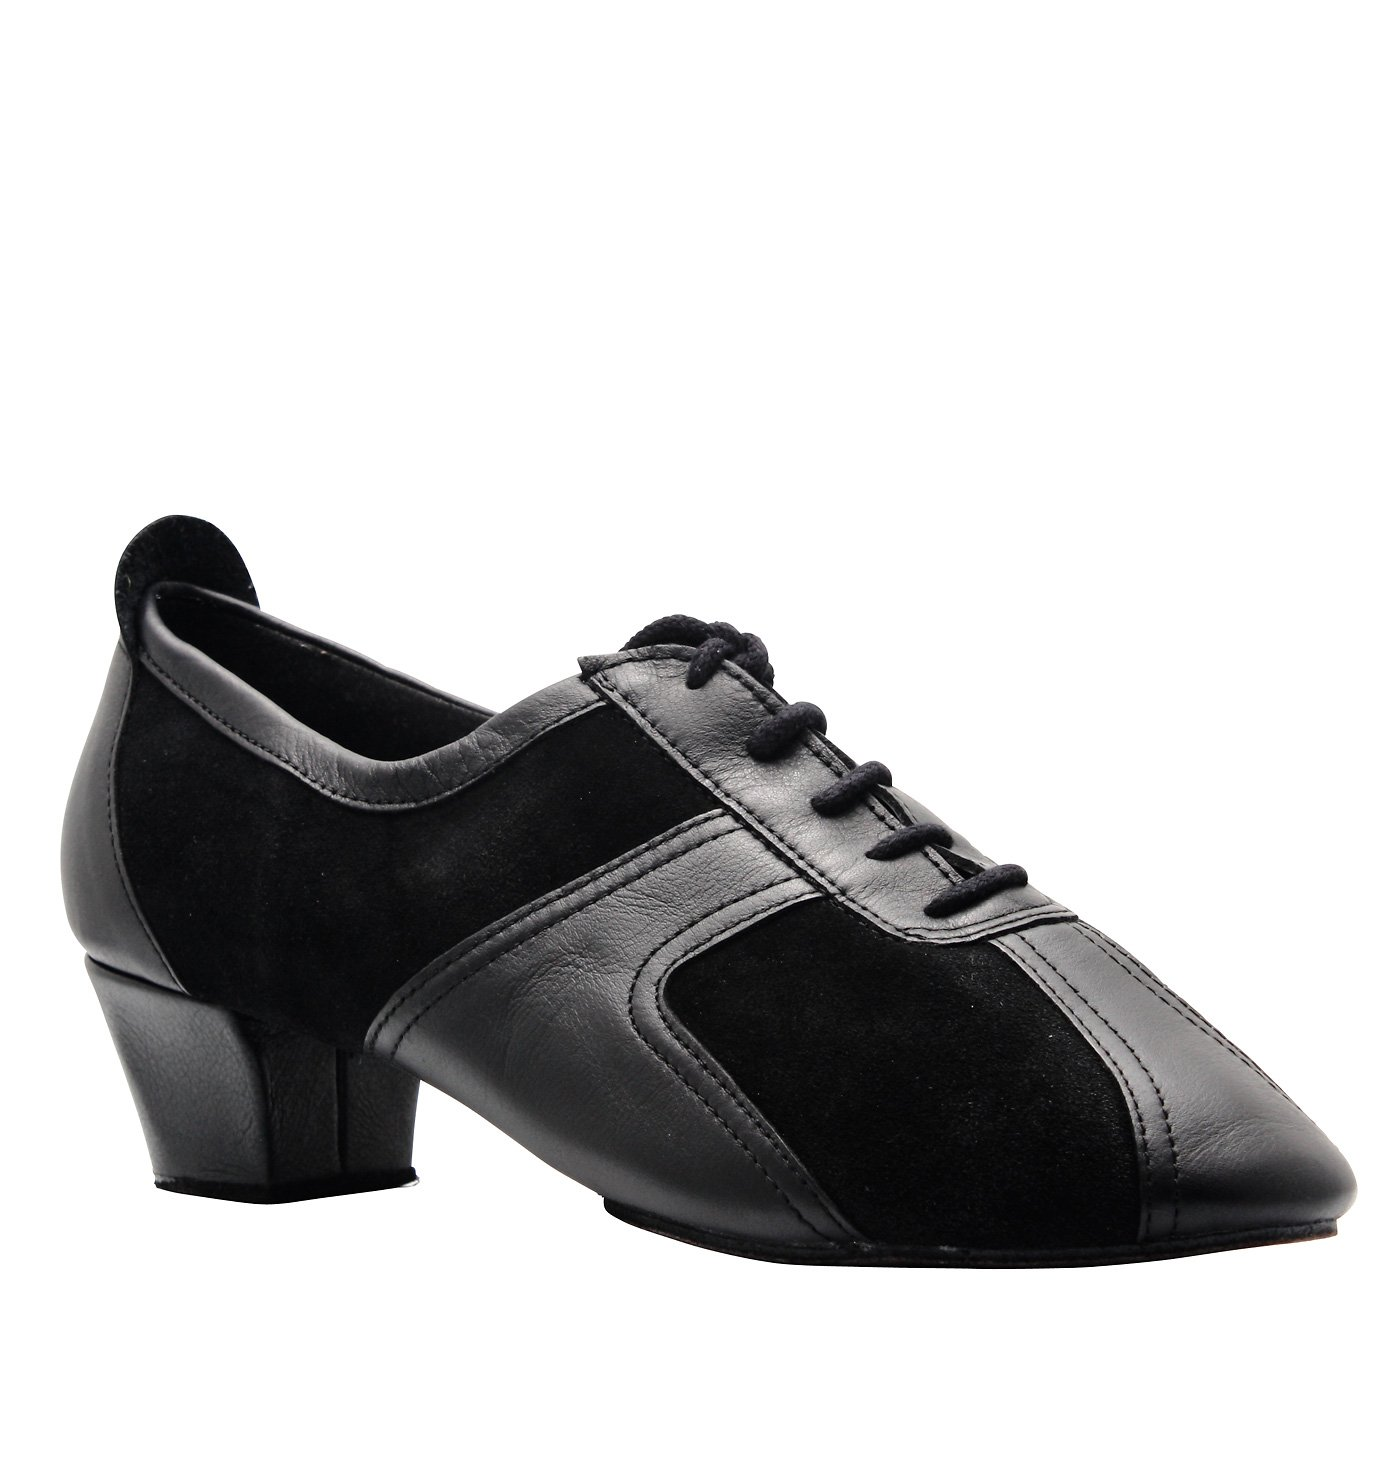 Unisex Breeze Teaching Shoes,410BL1508.0,Black Leather,08.0